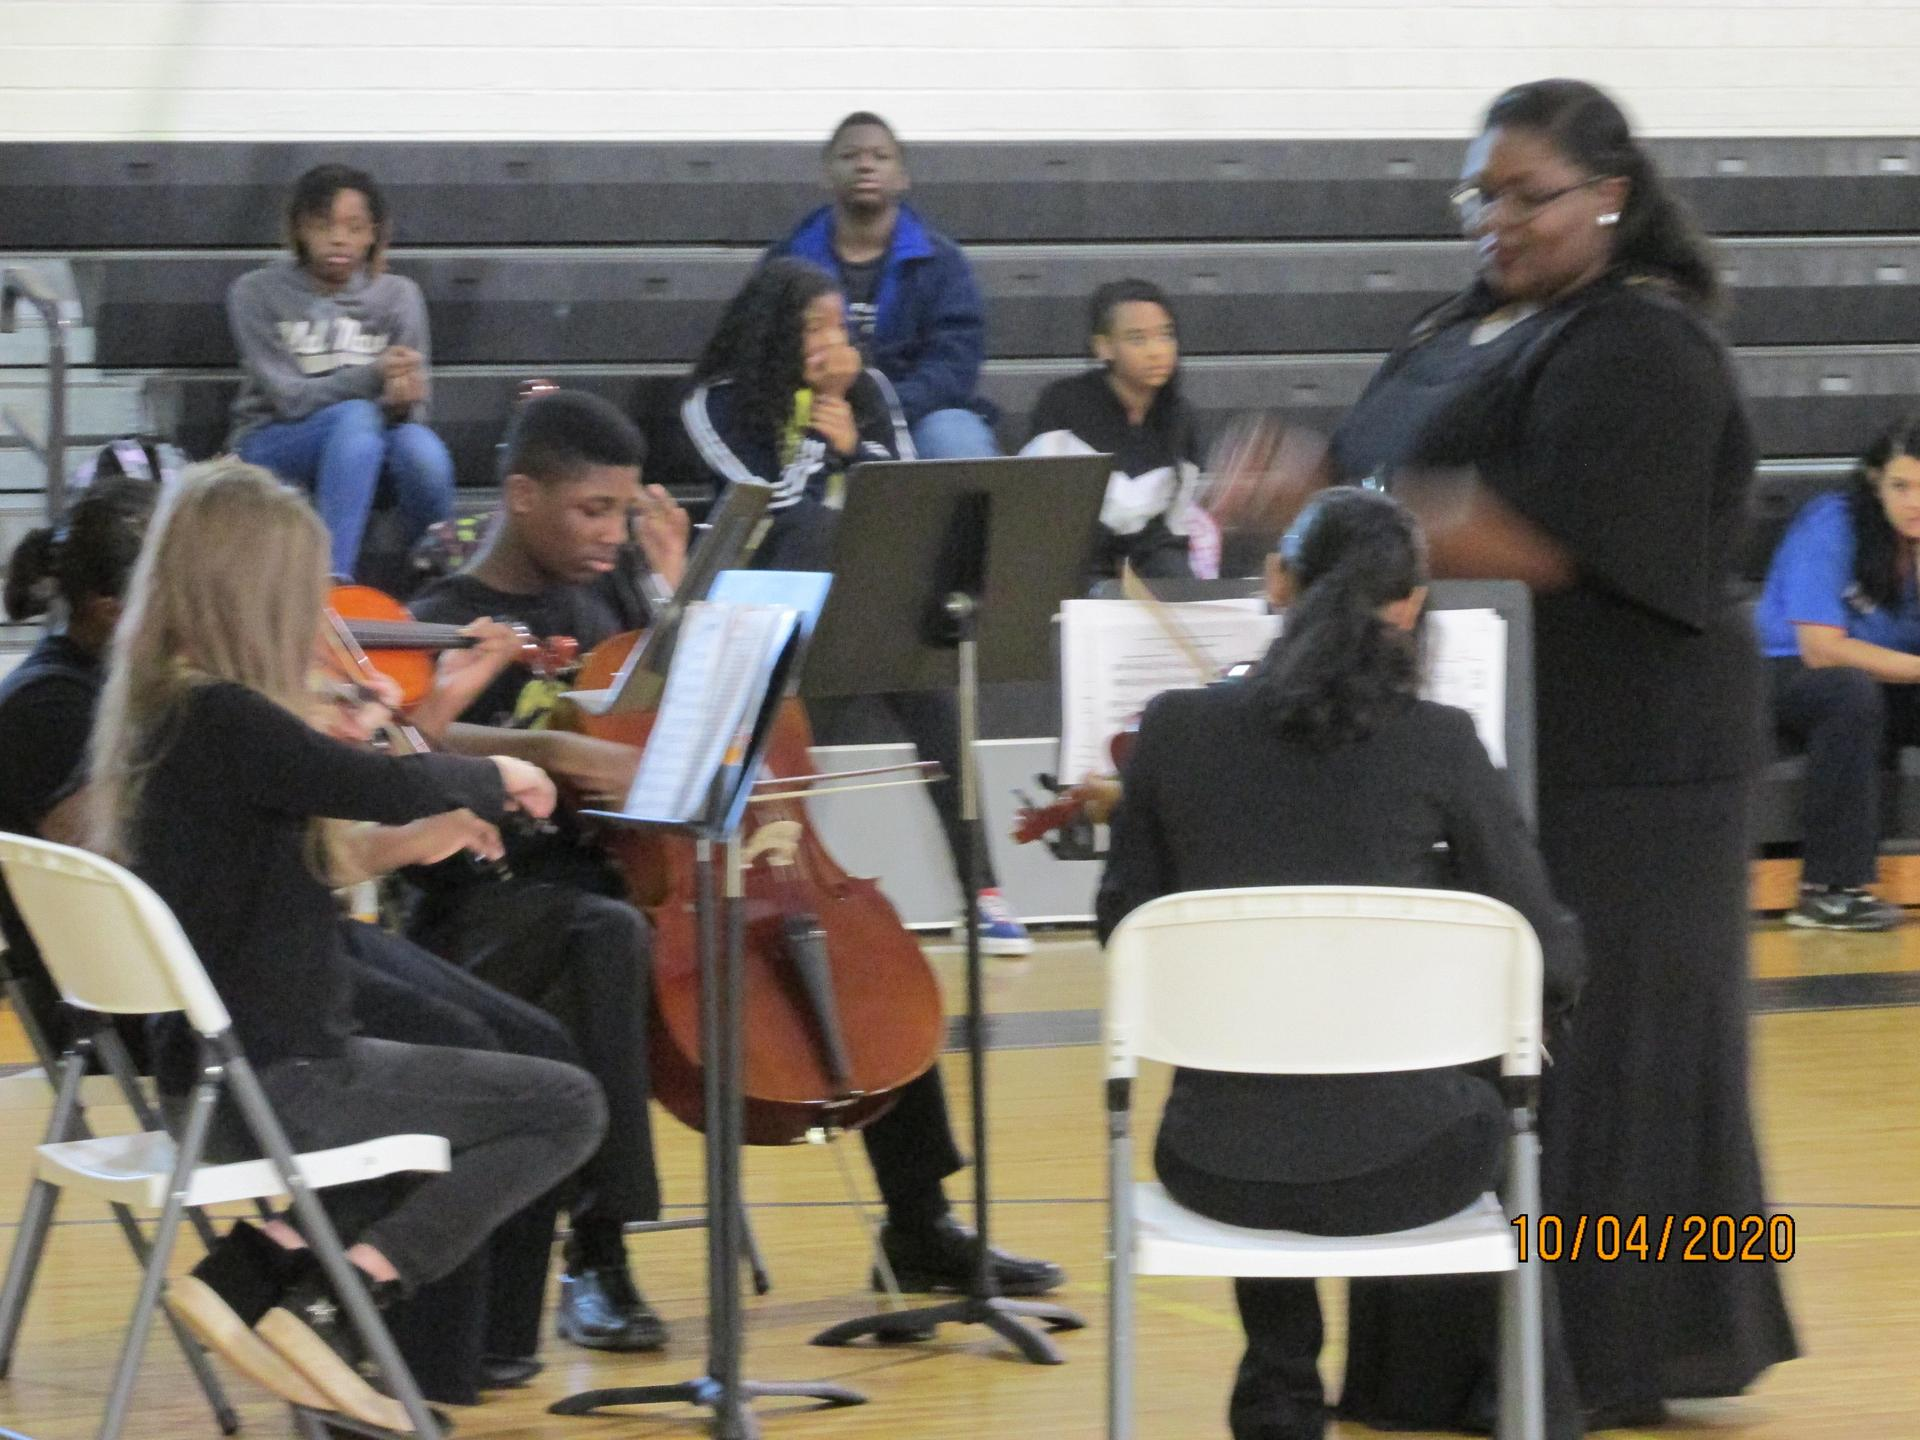 Ms. Wise and the Orchestra students performing